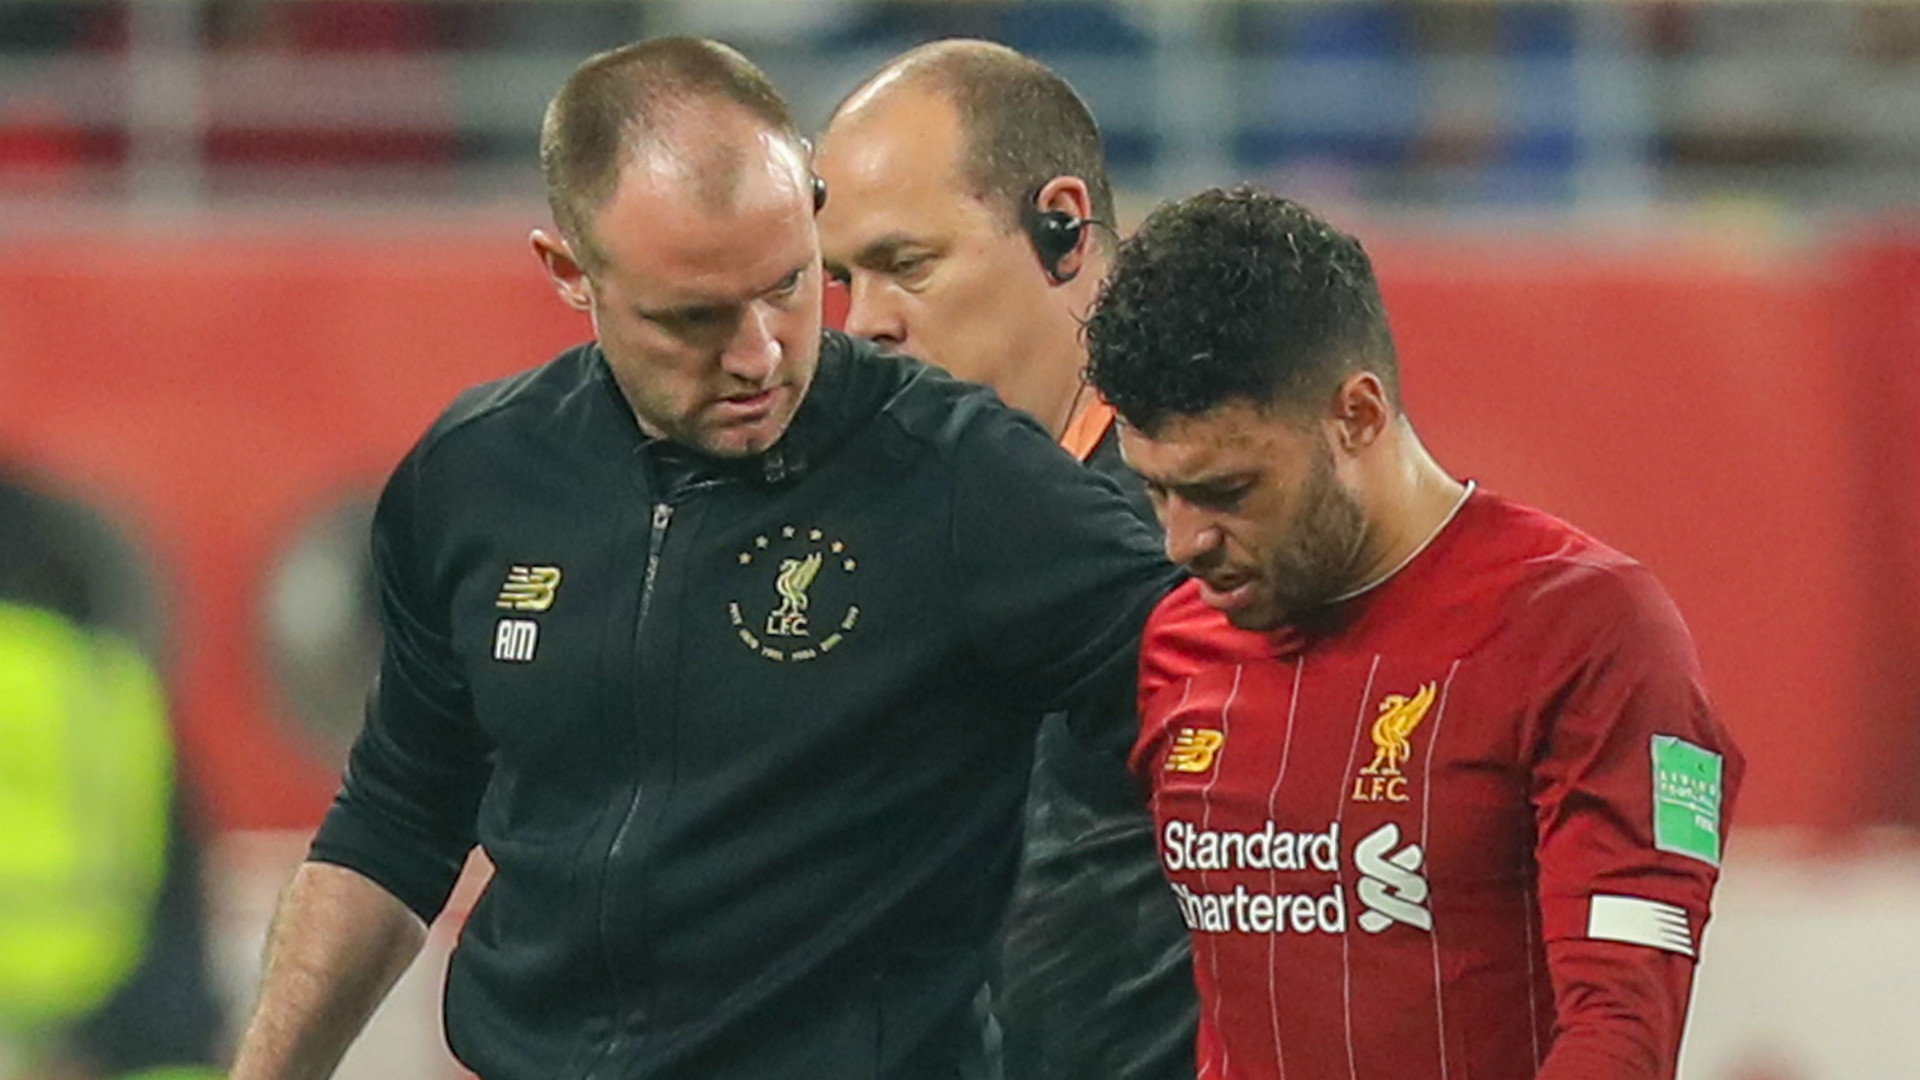 Liverpool's Oxlade-Chamberlain sidelined with ankle injury